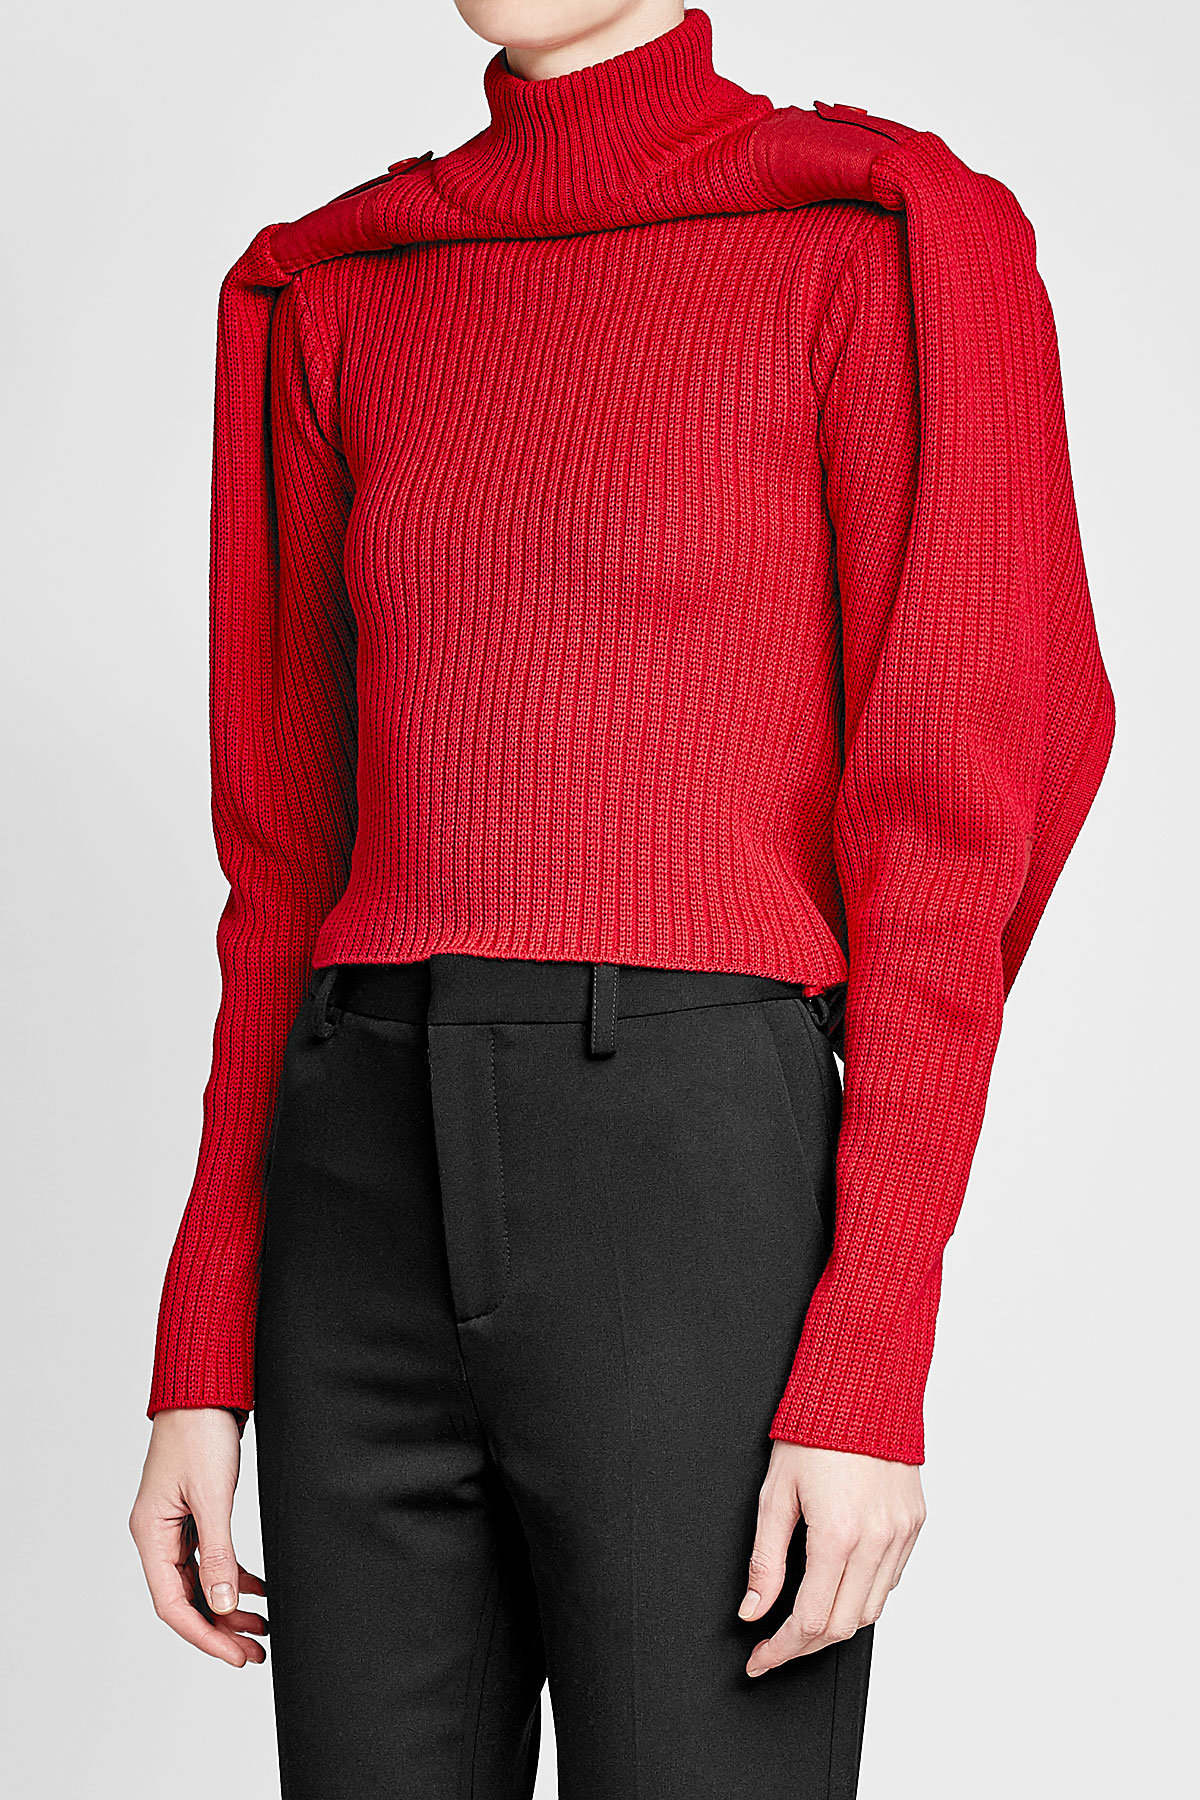 Y Project red Cotton Turtleneck Pullover rollneck sweater